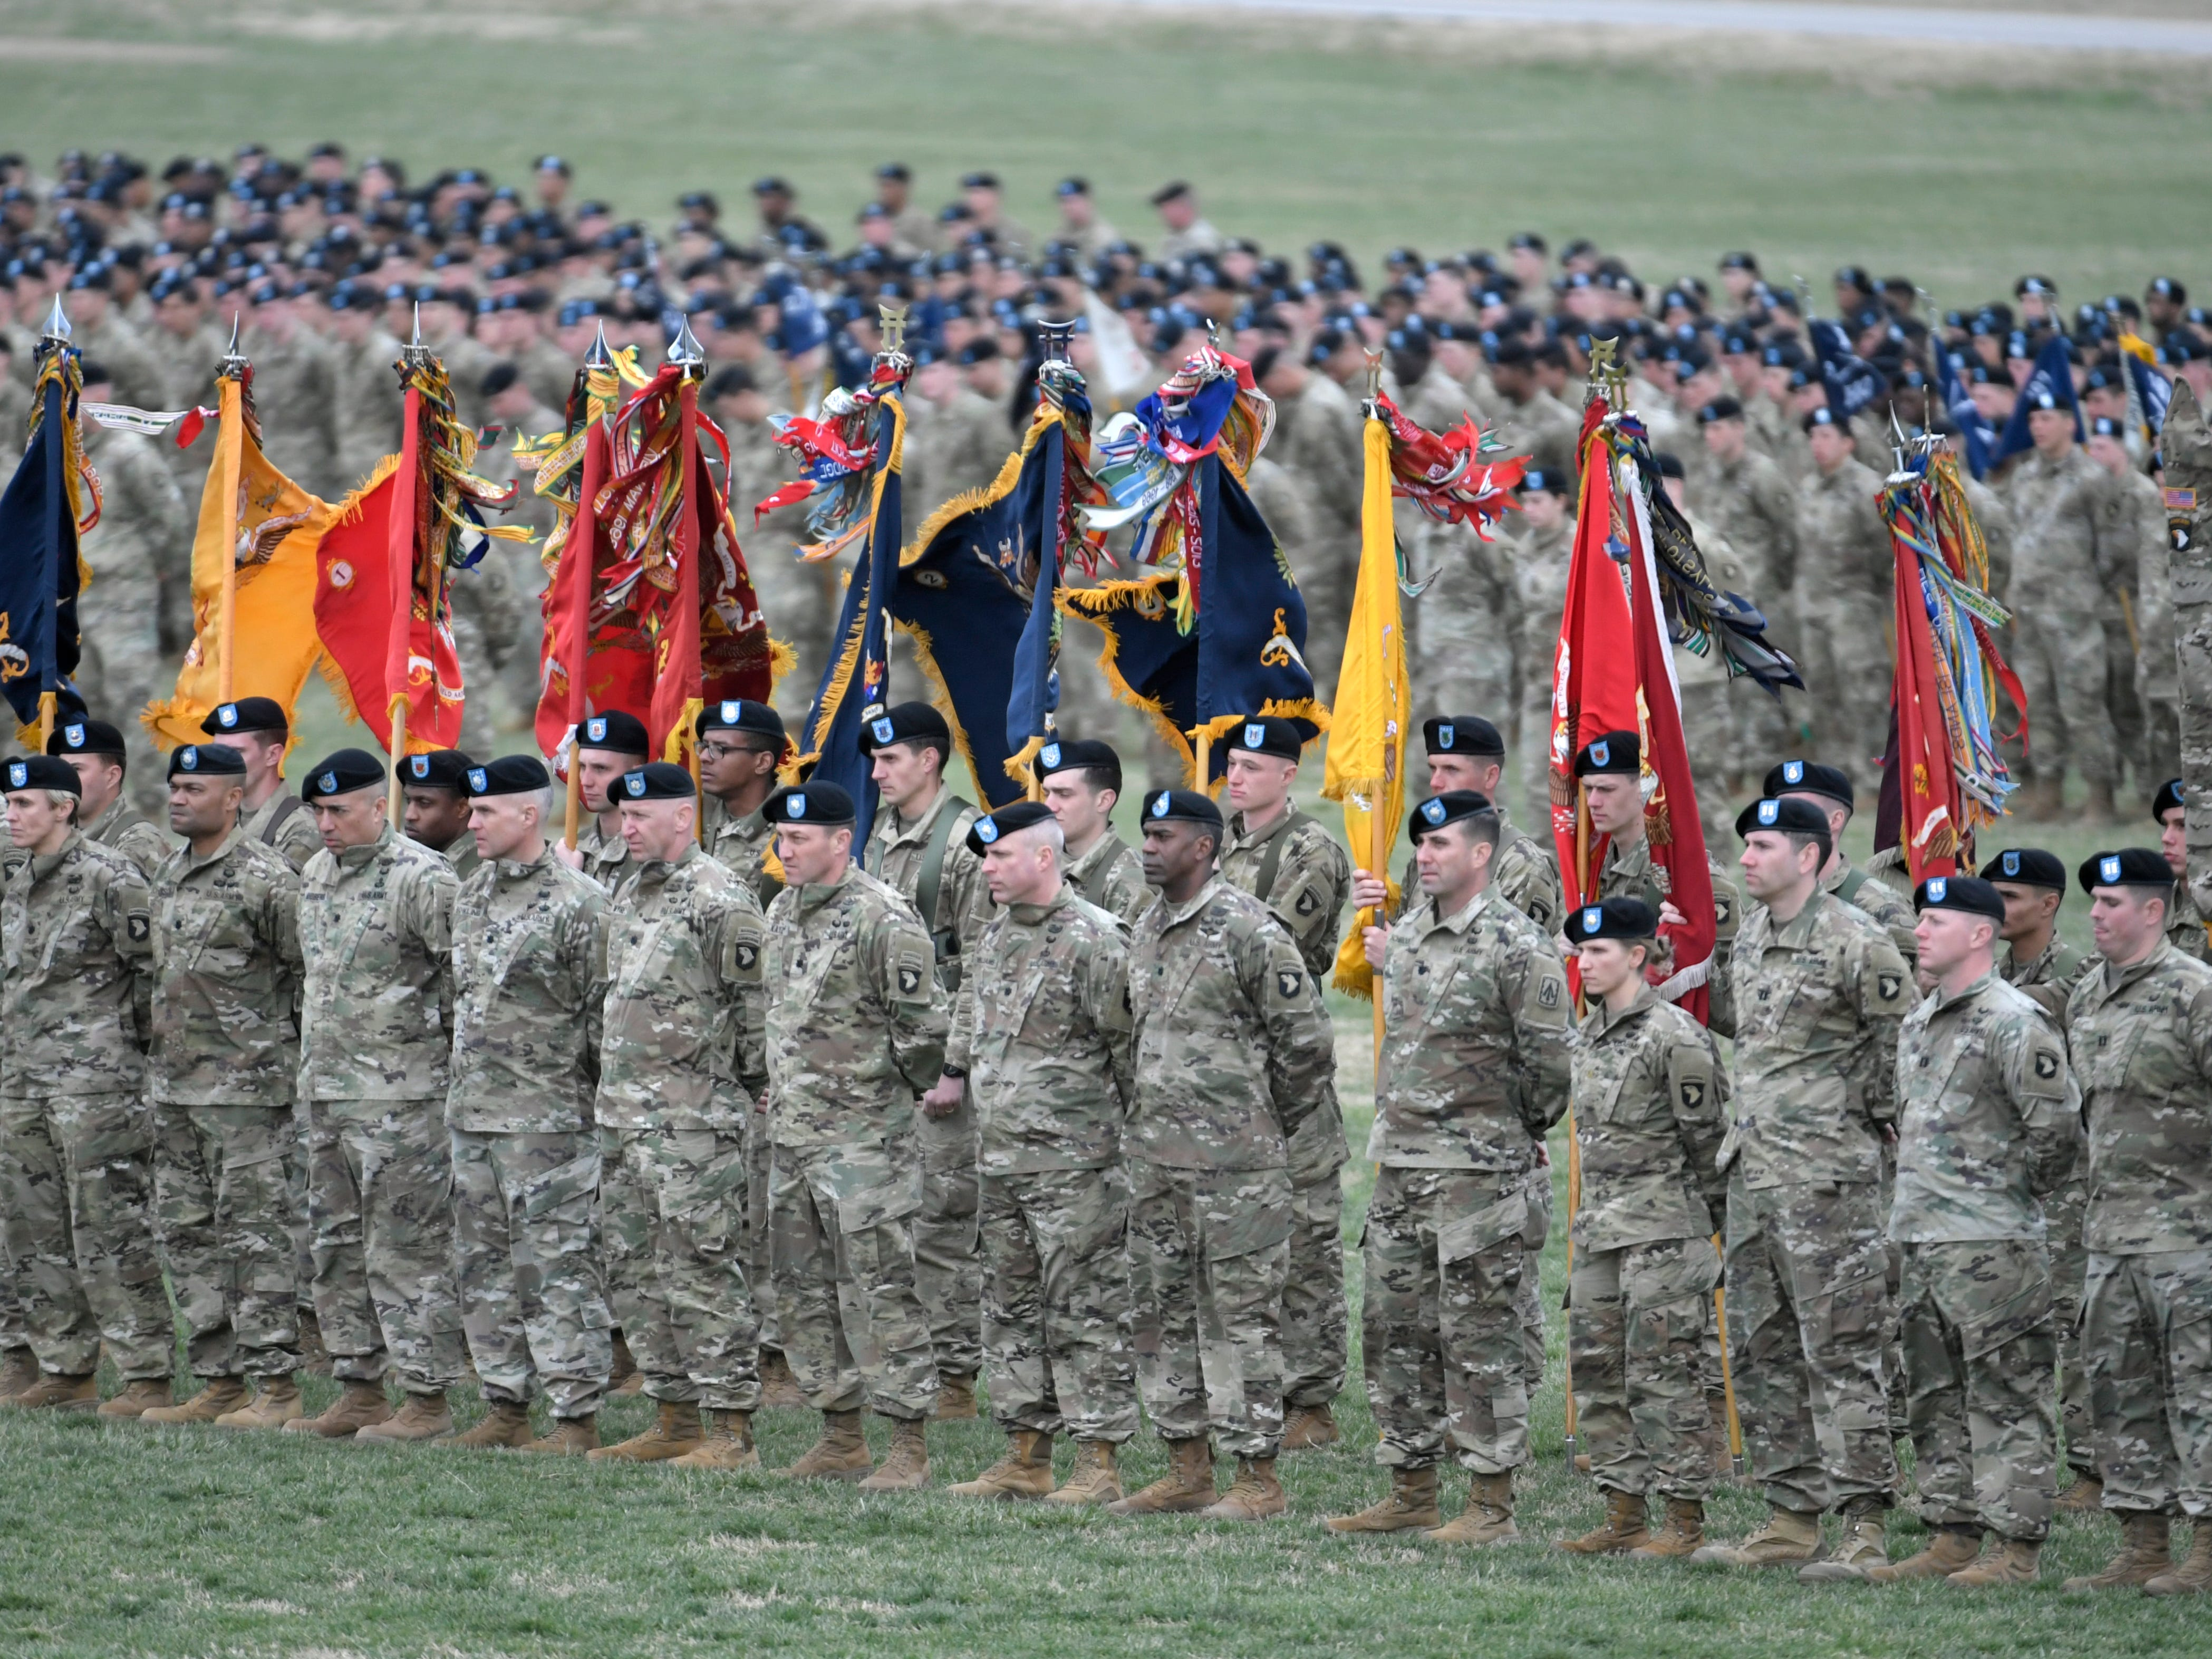 Troops stand in formation during a 101st Airborne Division (Air Assault) and Fort Campbell Division Change of Command ceremony in Fort Campbell, KY on Thursday, Feb. 14, 2019.